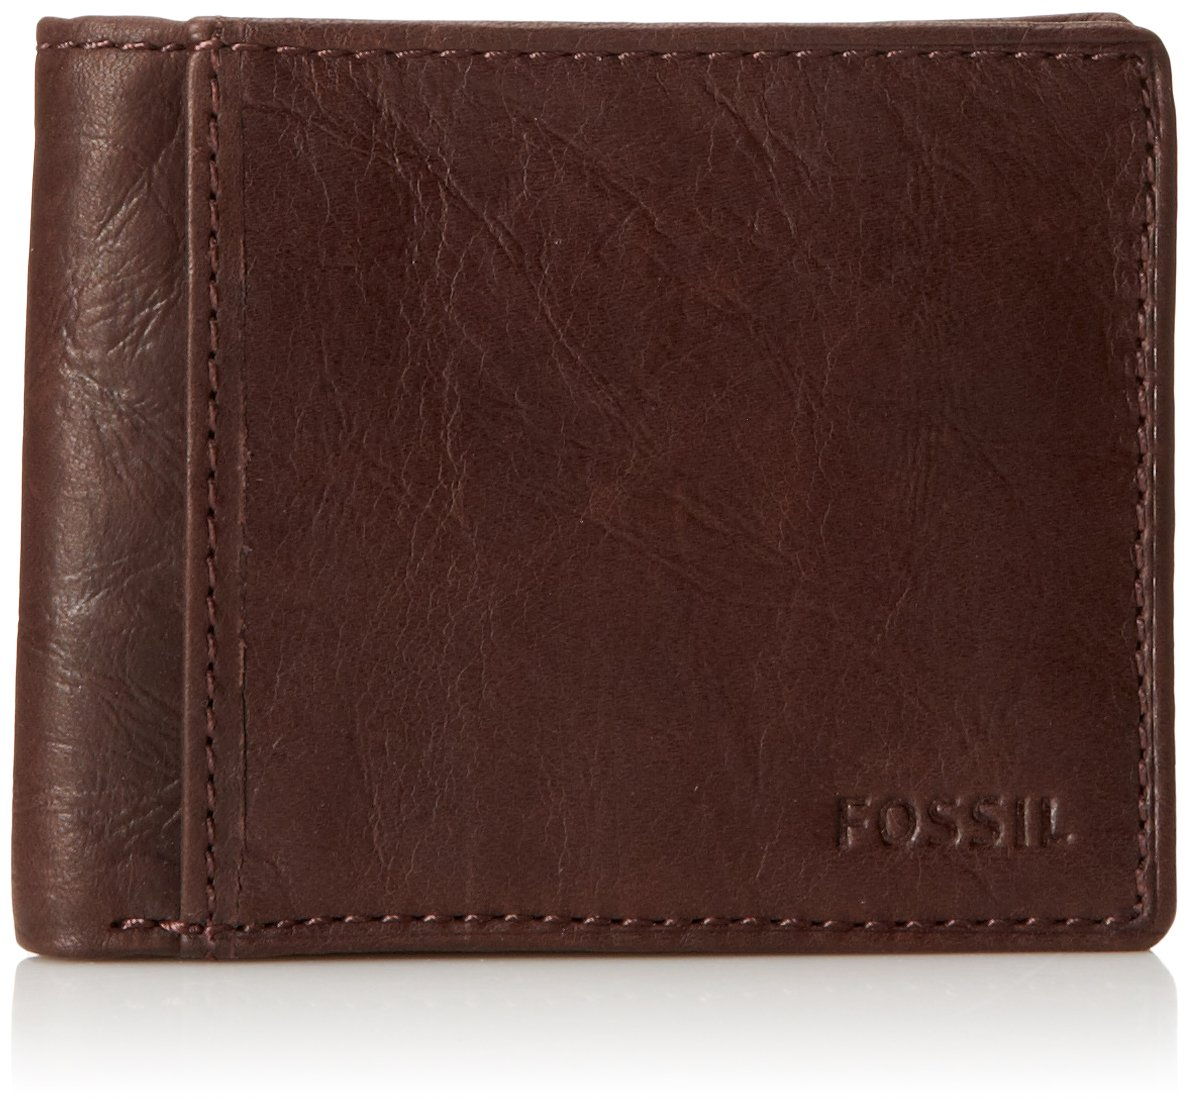 Fossil International Combination Wallet